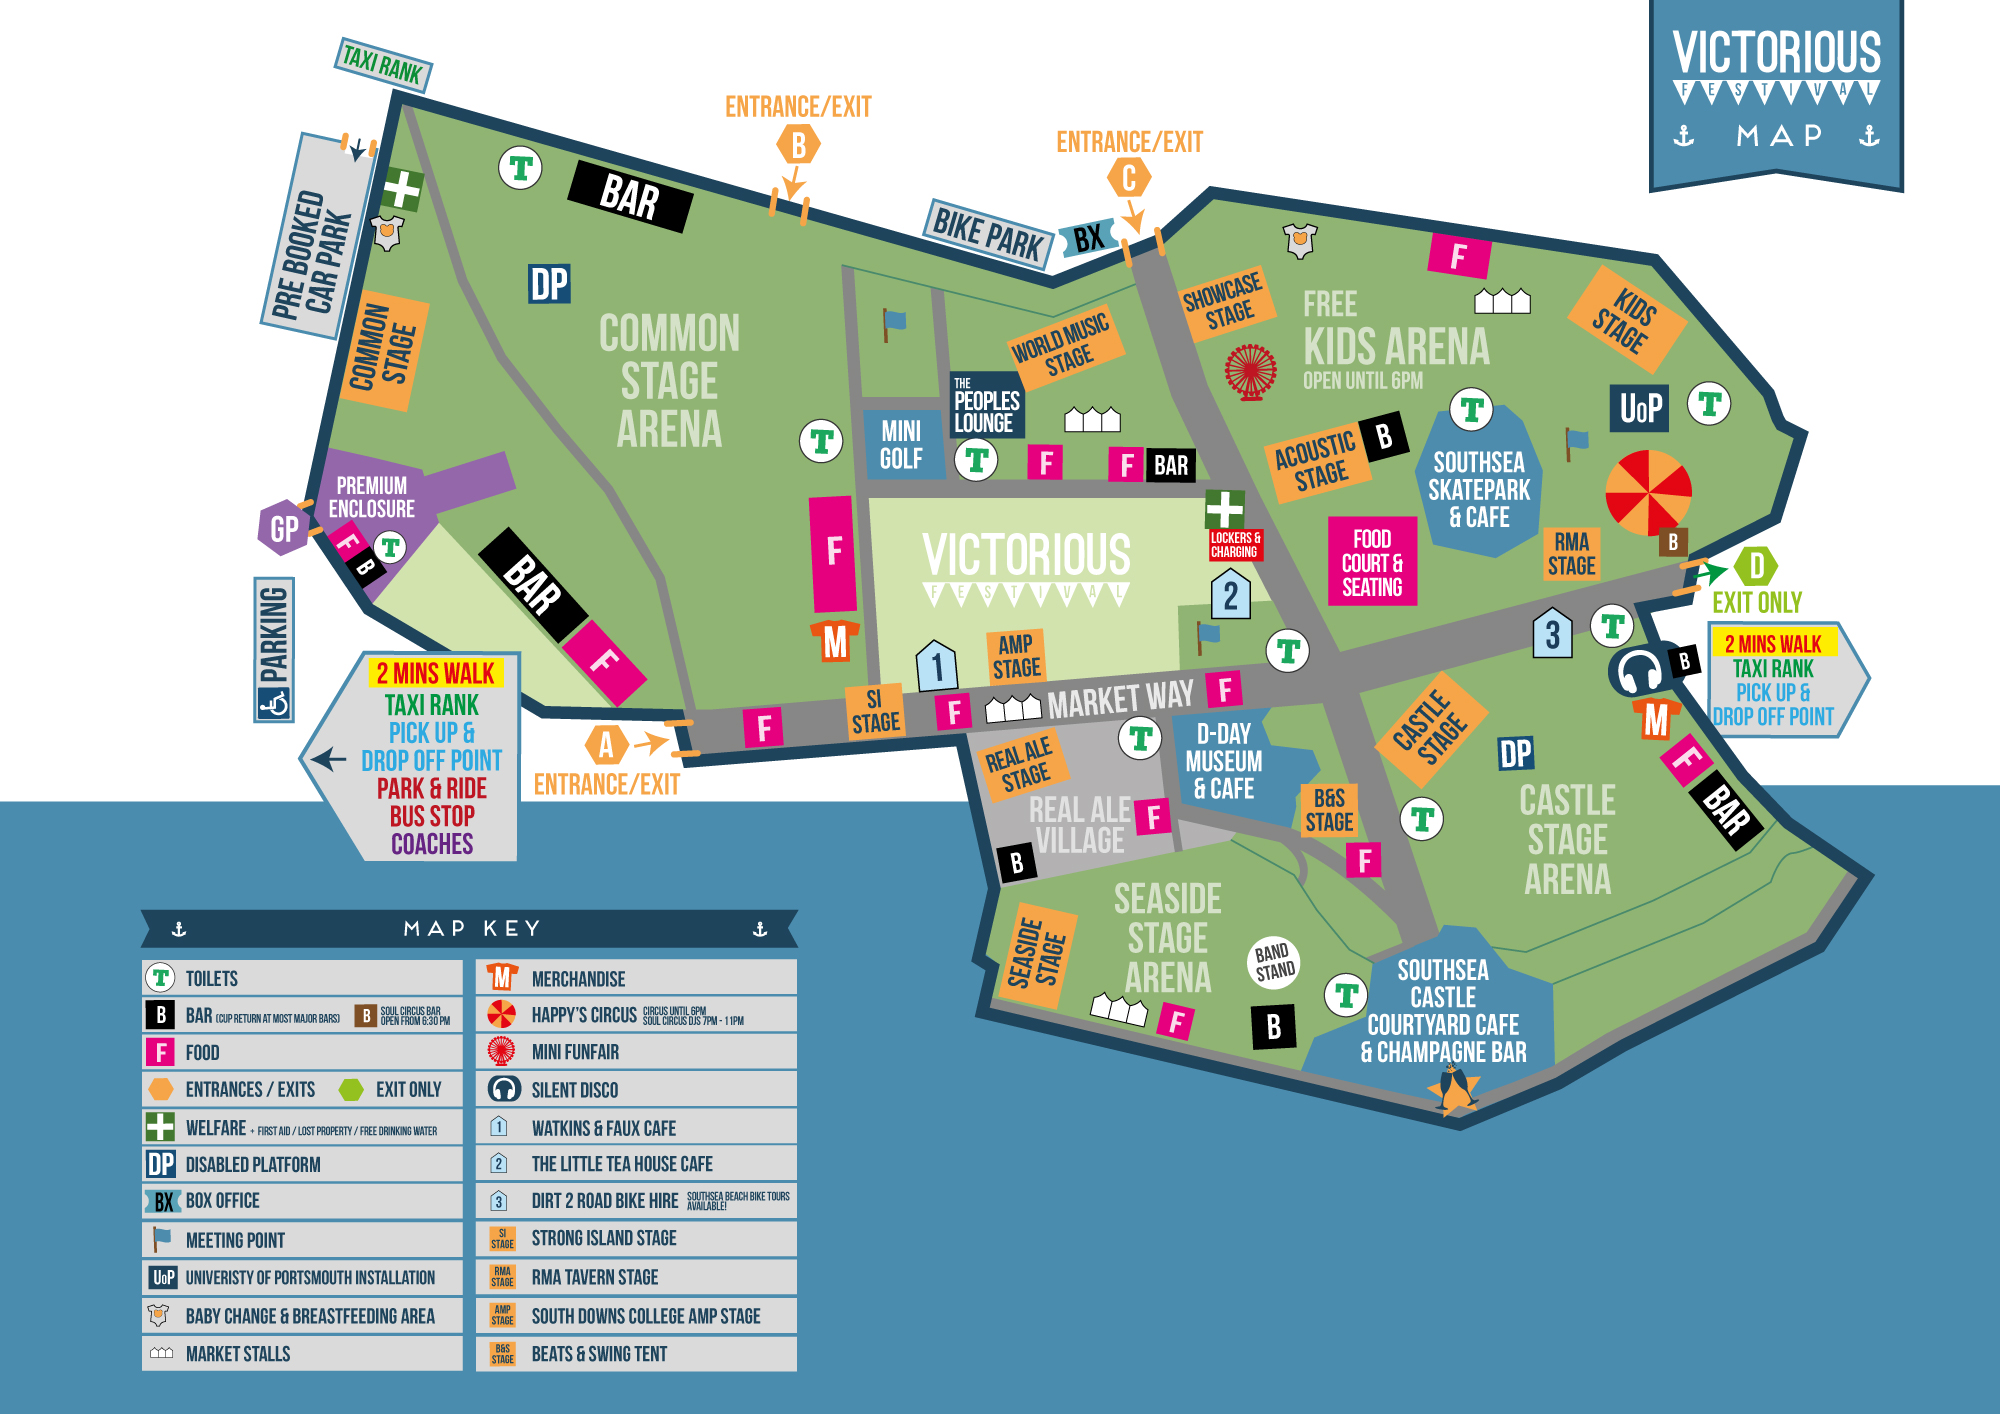 Check Out The Victorious Festival Map Victorious Festival - Check off map